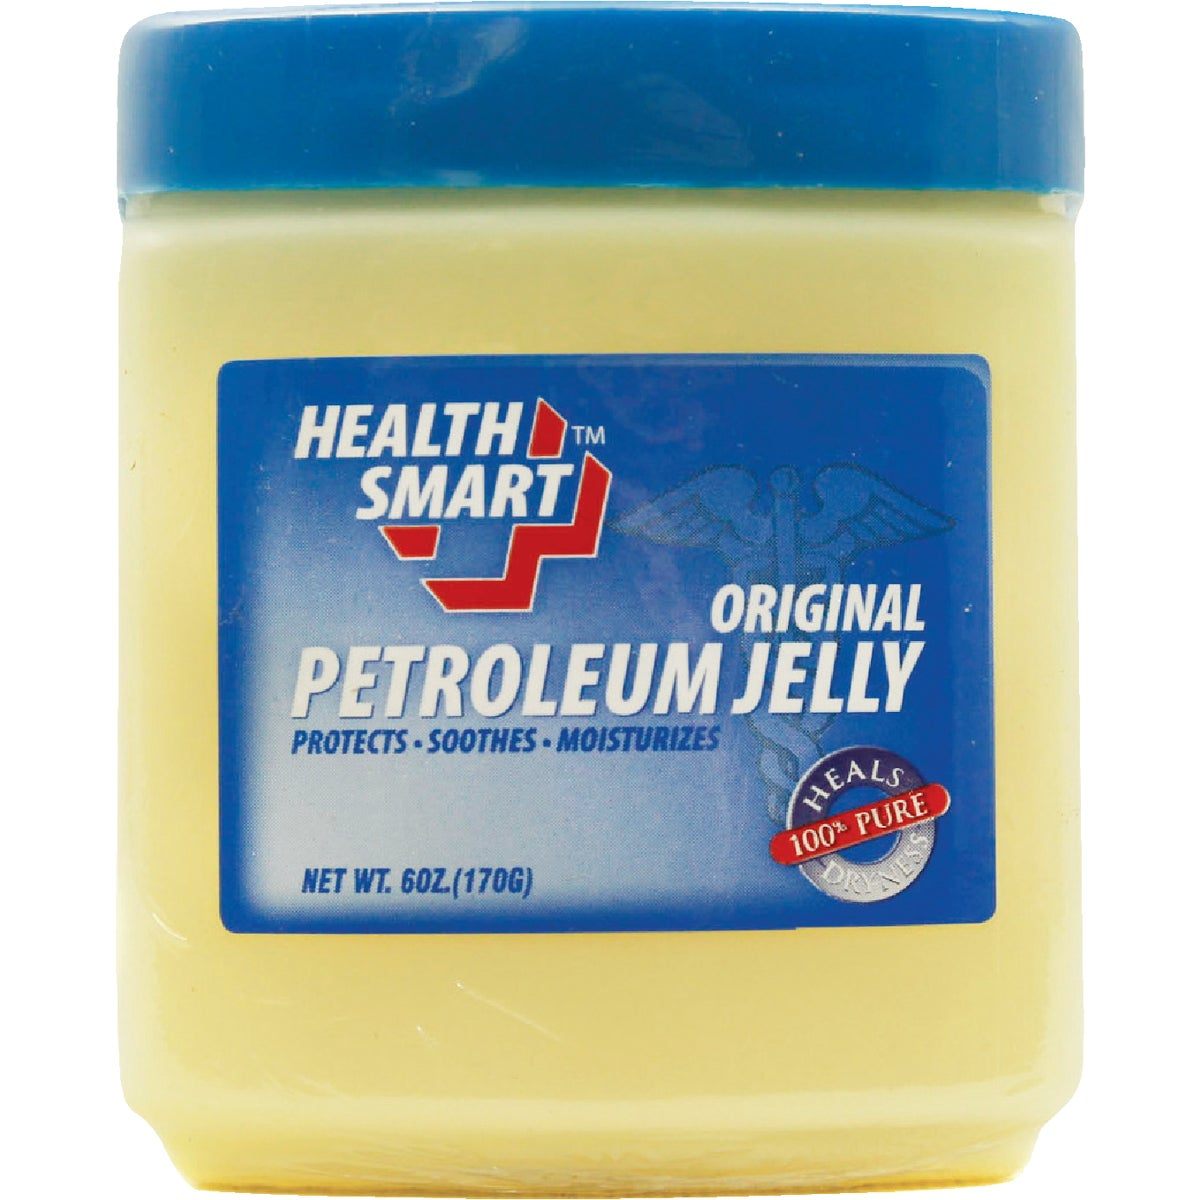 6OZ PETROLEUM JELLY